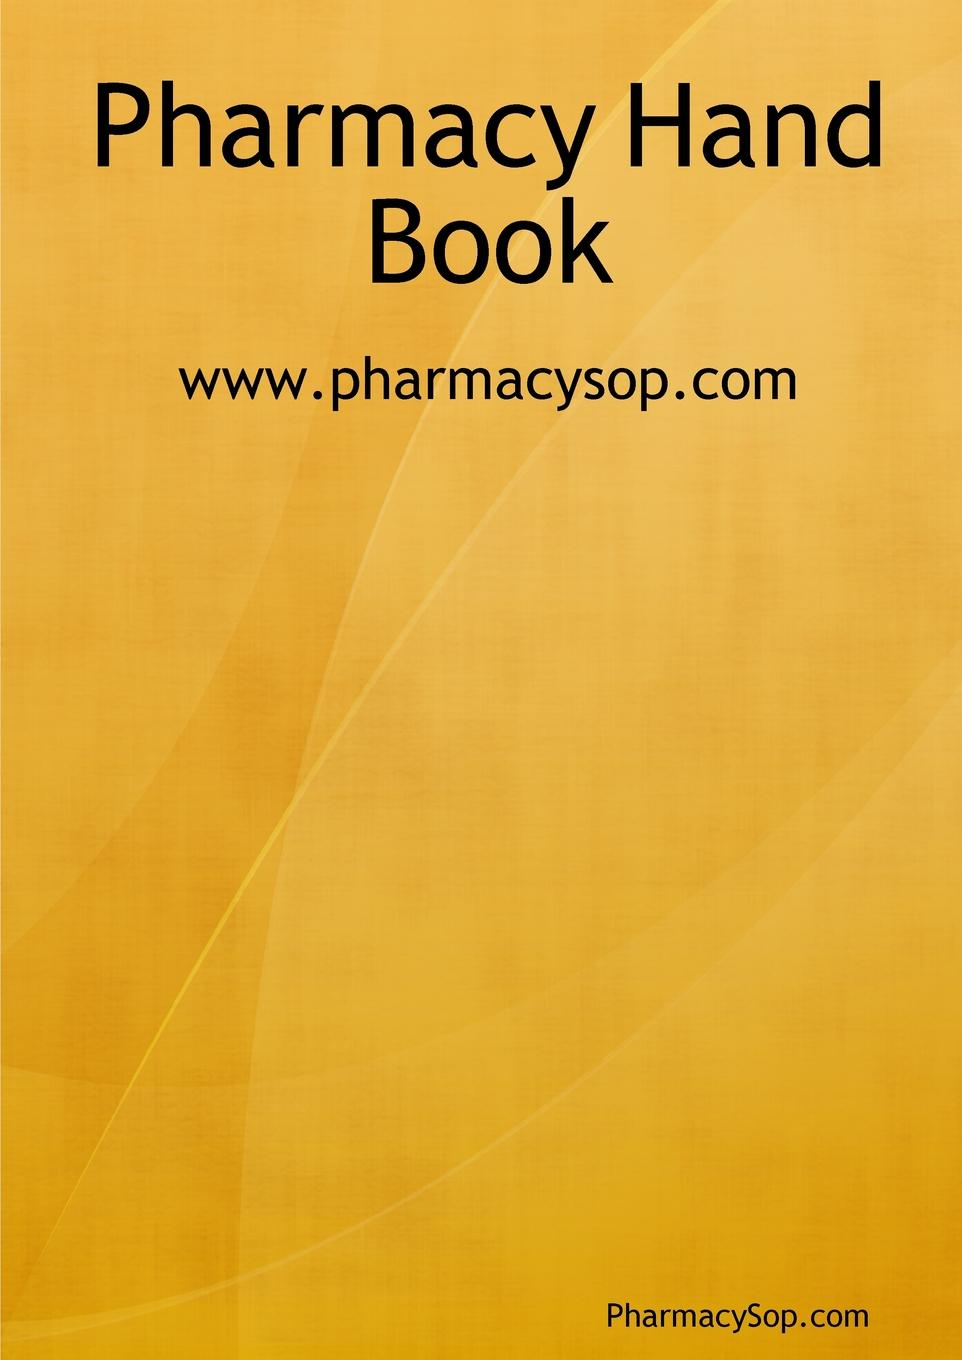 Pharmacy Sop Com Pharmacy Hand Book rf2713 rfmd sop 14